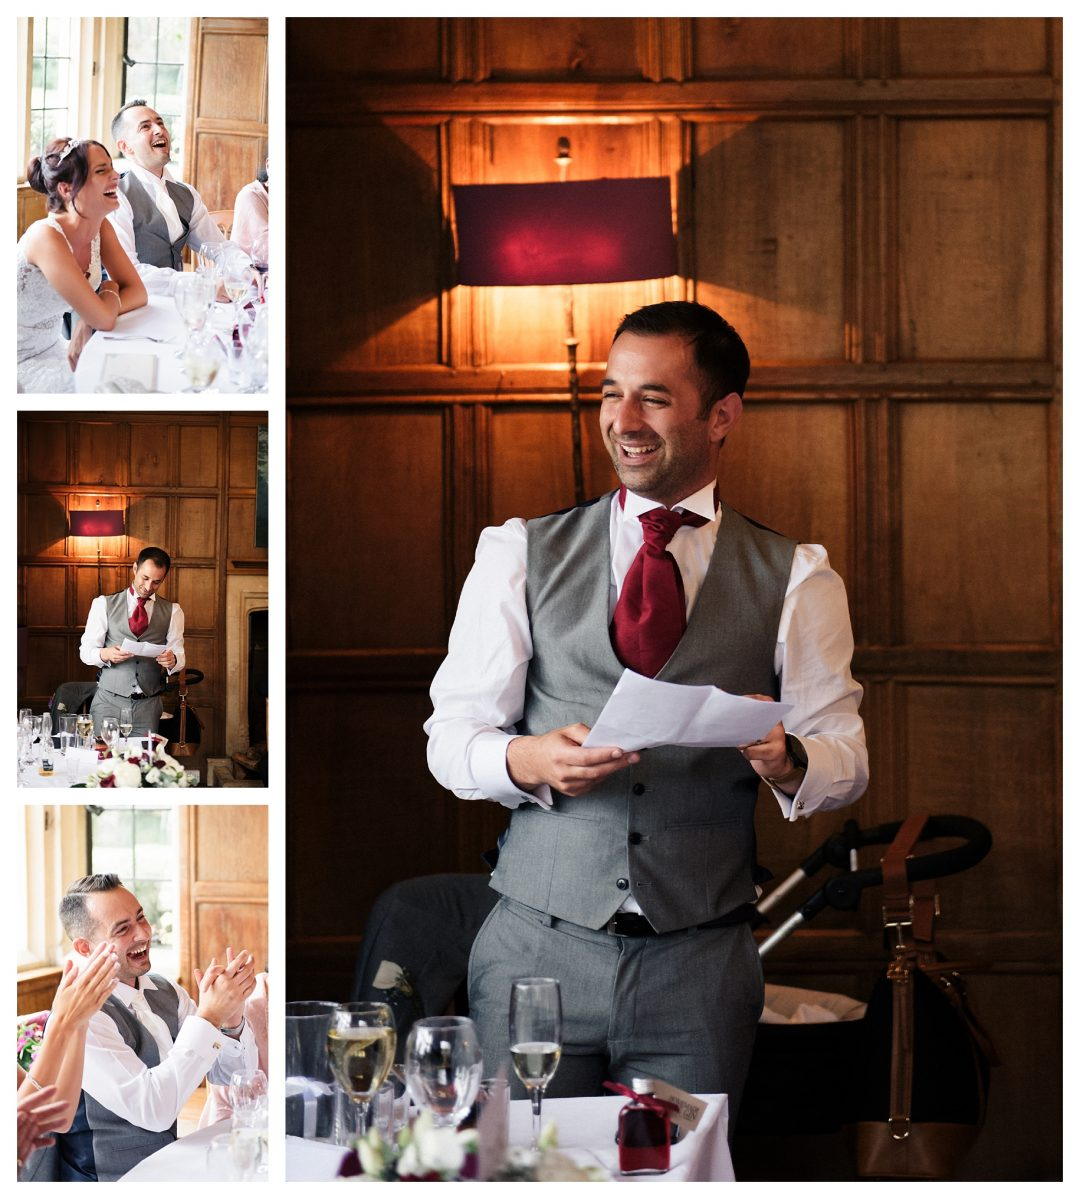 Matt & Laura's Wedding - weddings - nkimphotogrphy com notting hill 0549